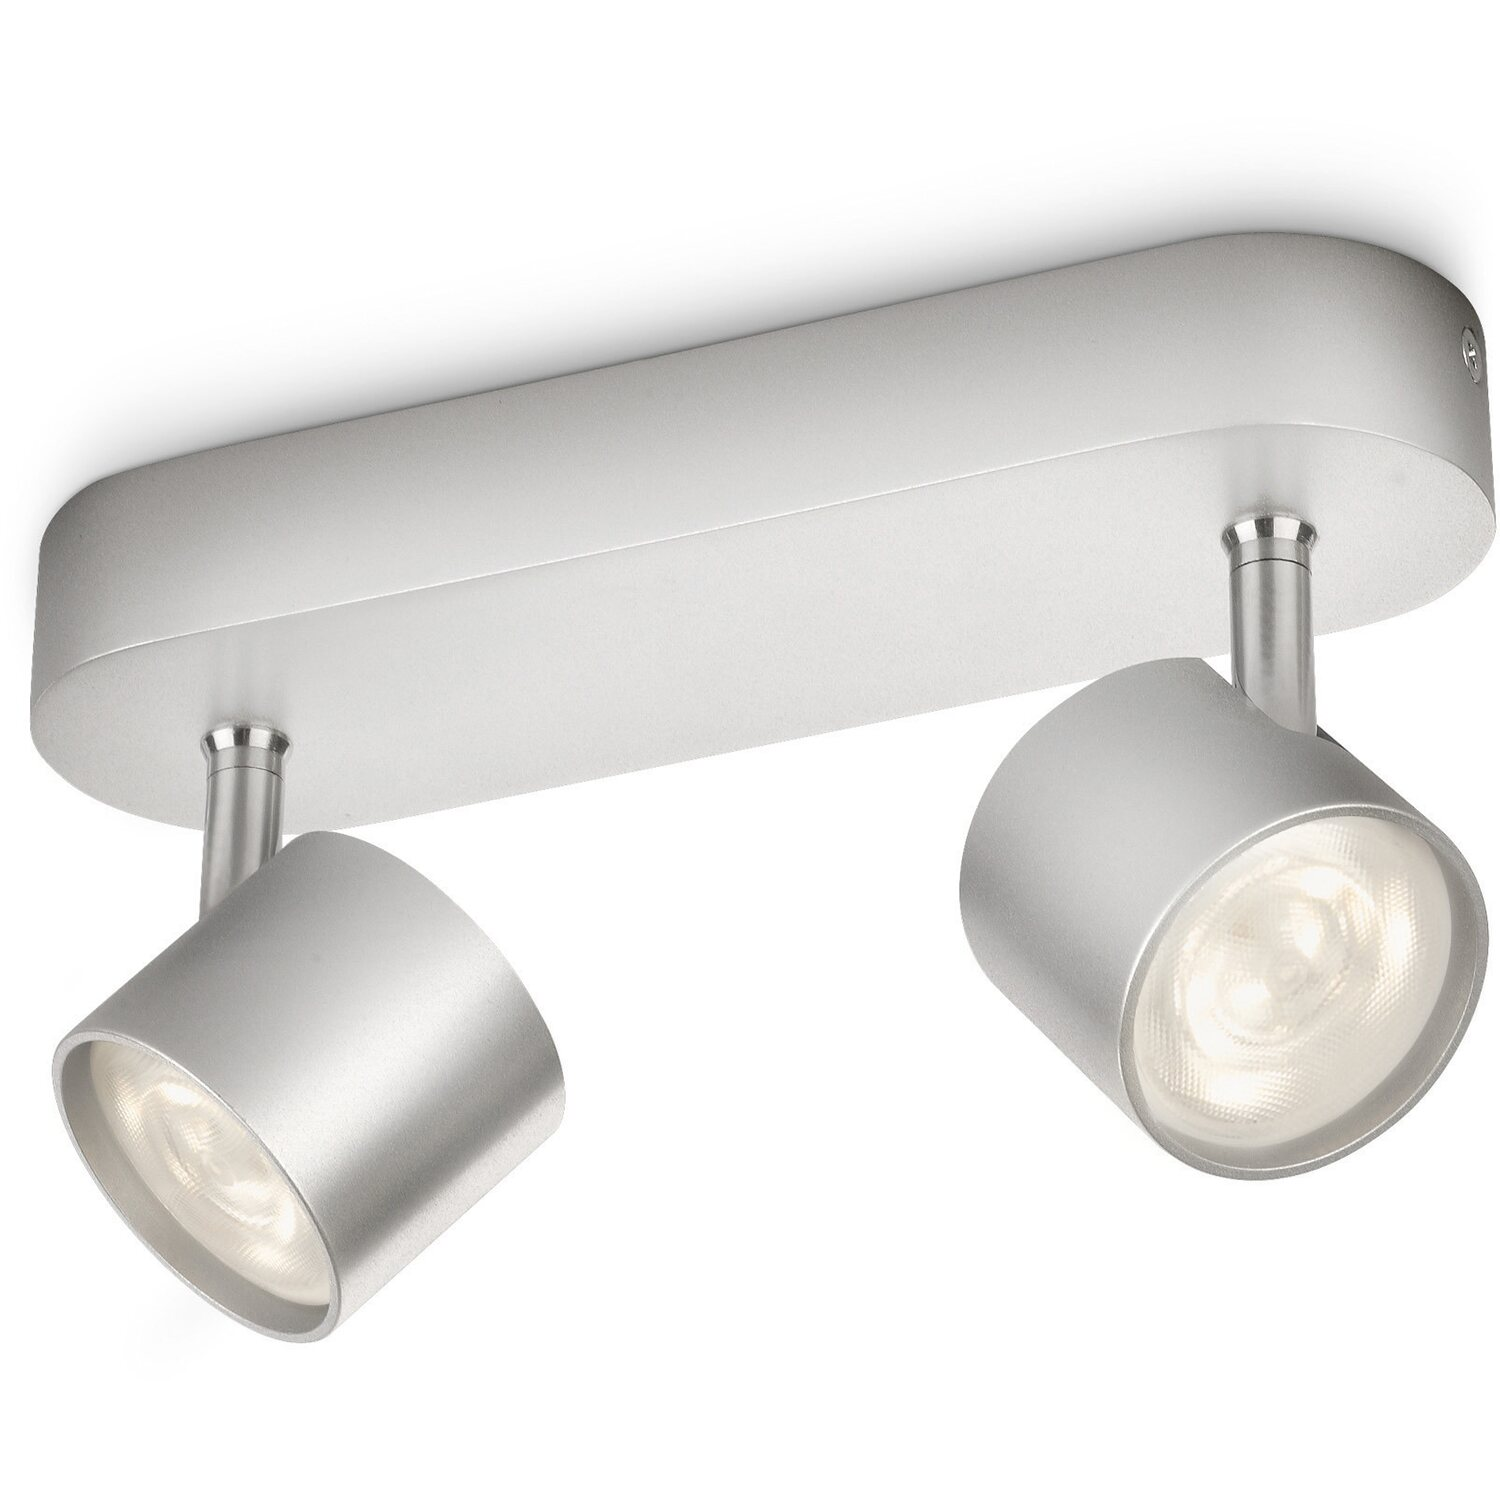 Philips LED-Spot 2er Star Silber EEK: A++